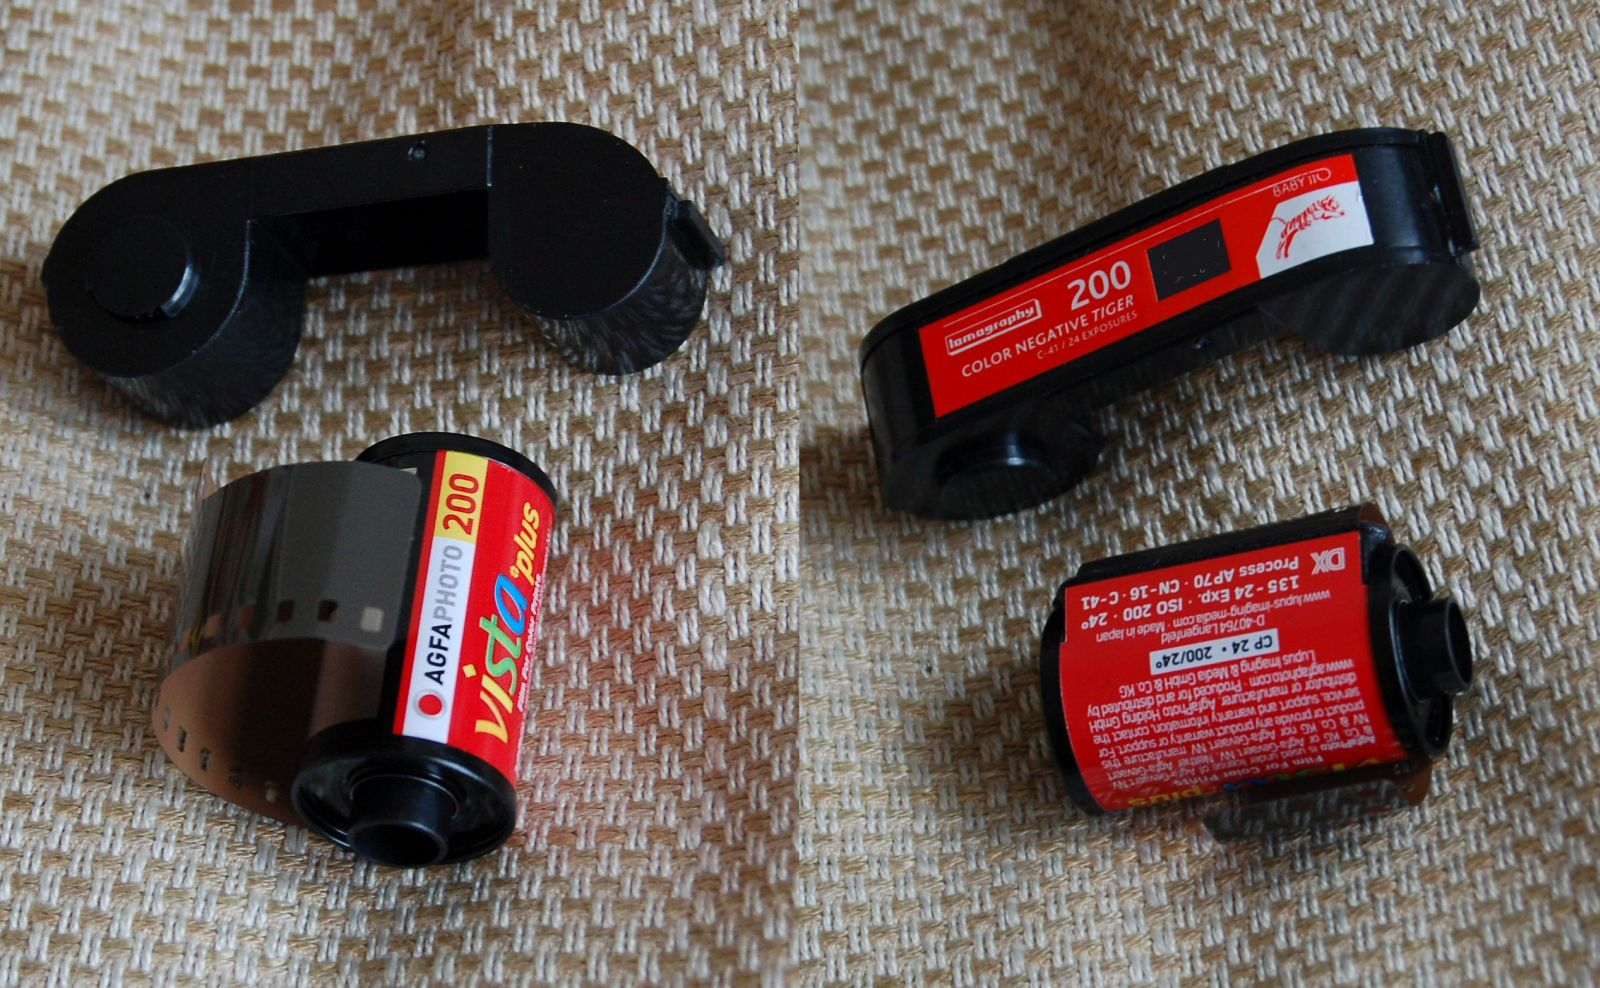 110 cartridge v 35mm cartridge